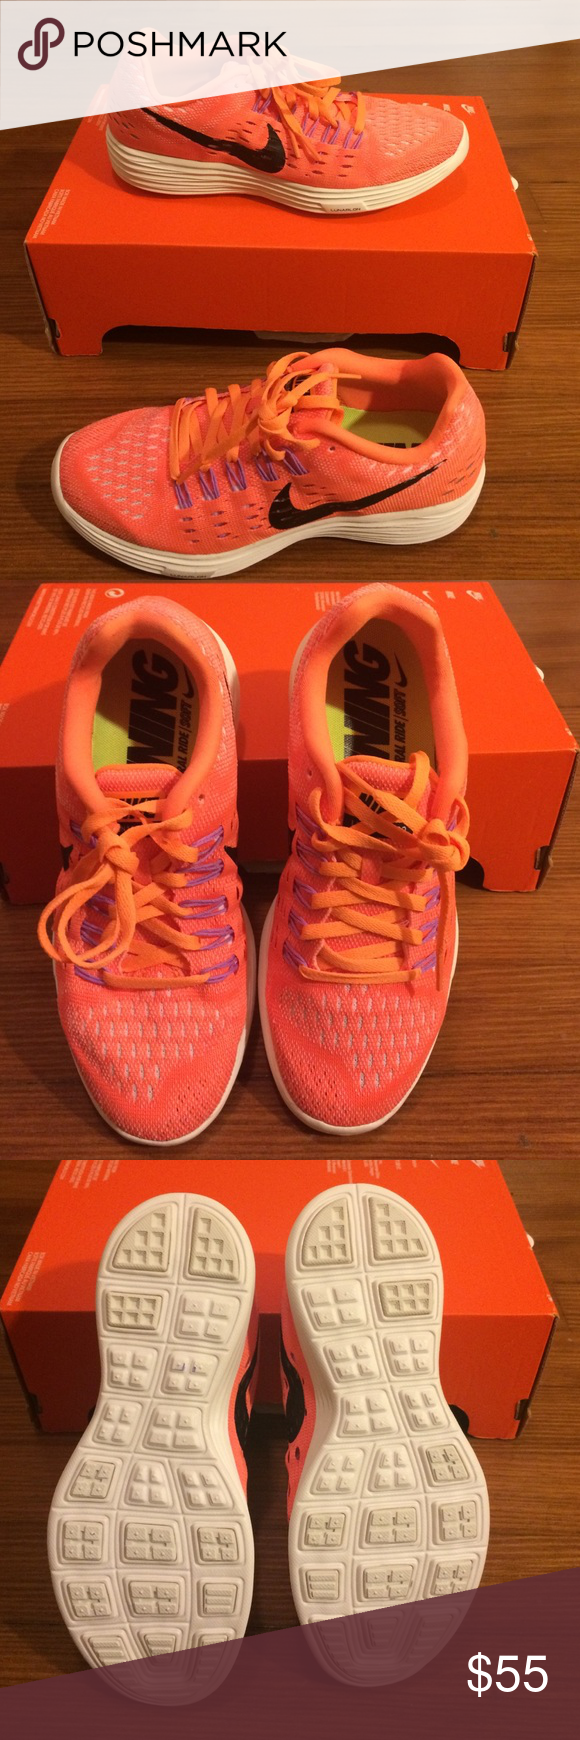 Nike LunarTempo These shoes combines the lightweight fit of a racing shoes with soft Lunarton cushioning for an ultra smooth ride. Ideal for Tempo training and long distance. Original Box not included Nike Shoes Sneakers